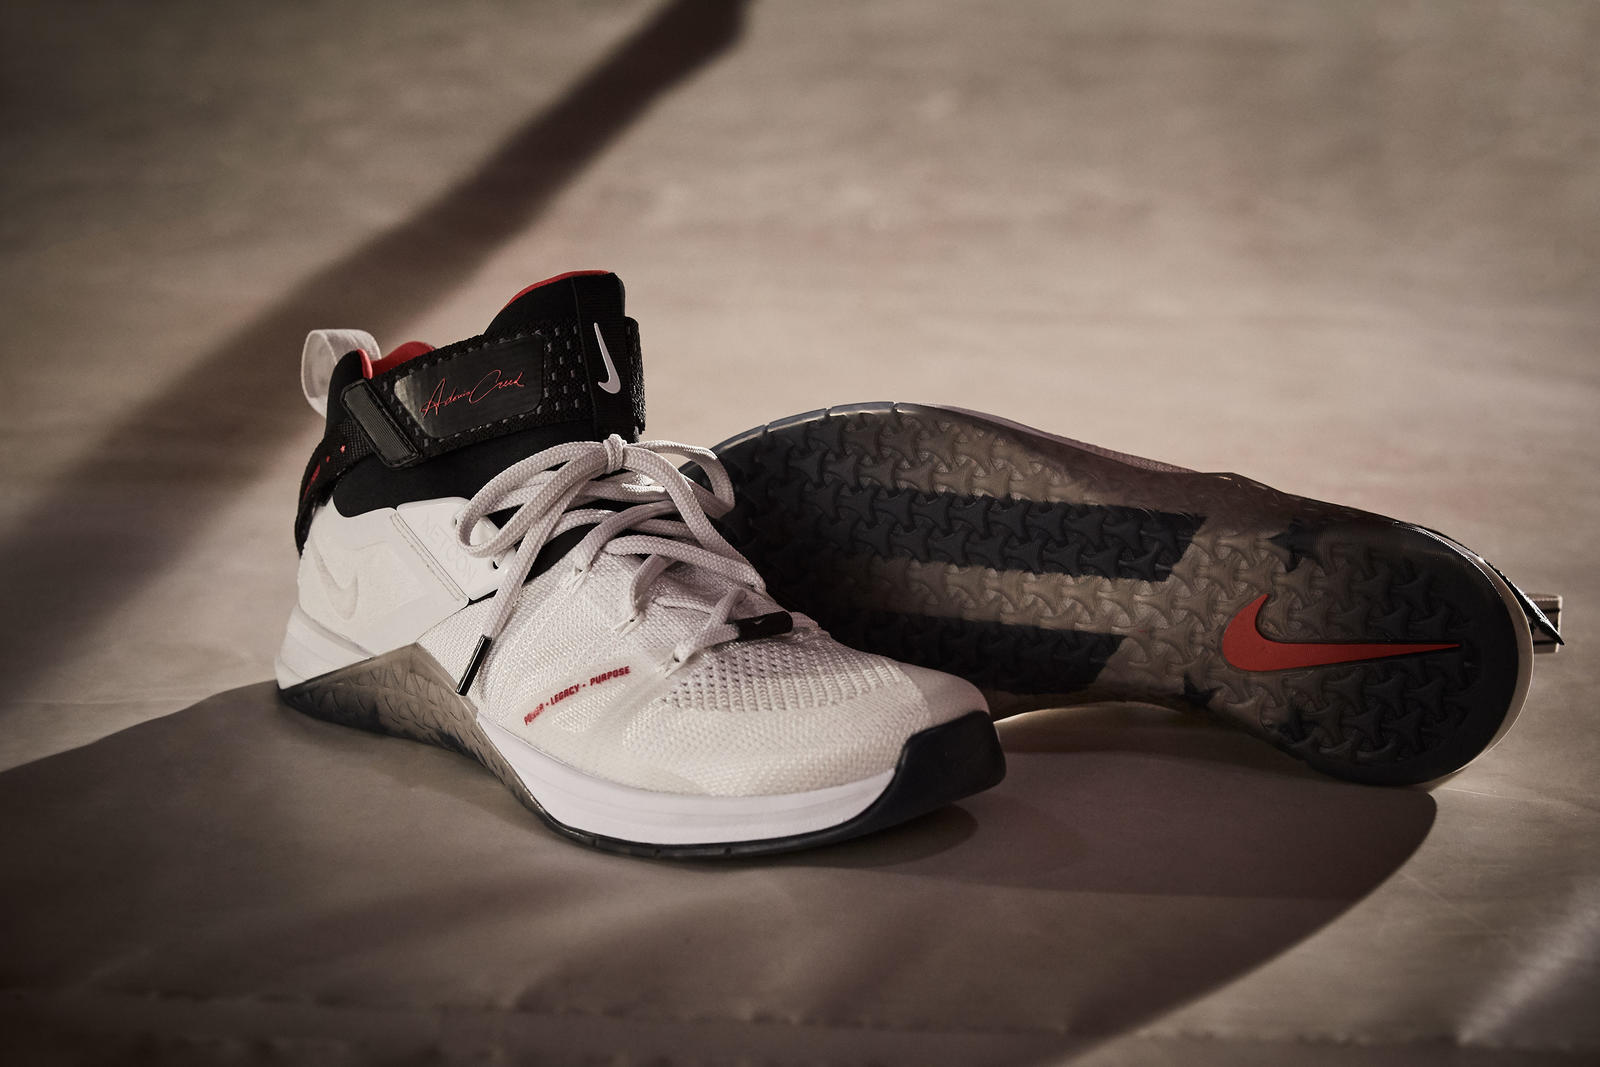 Nike x Creed Signature Collection